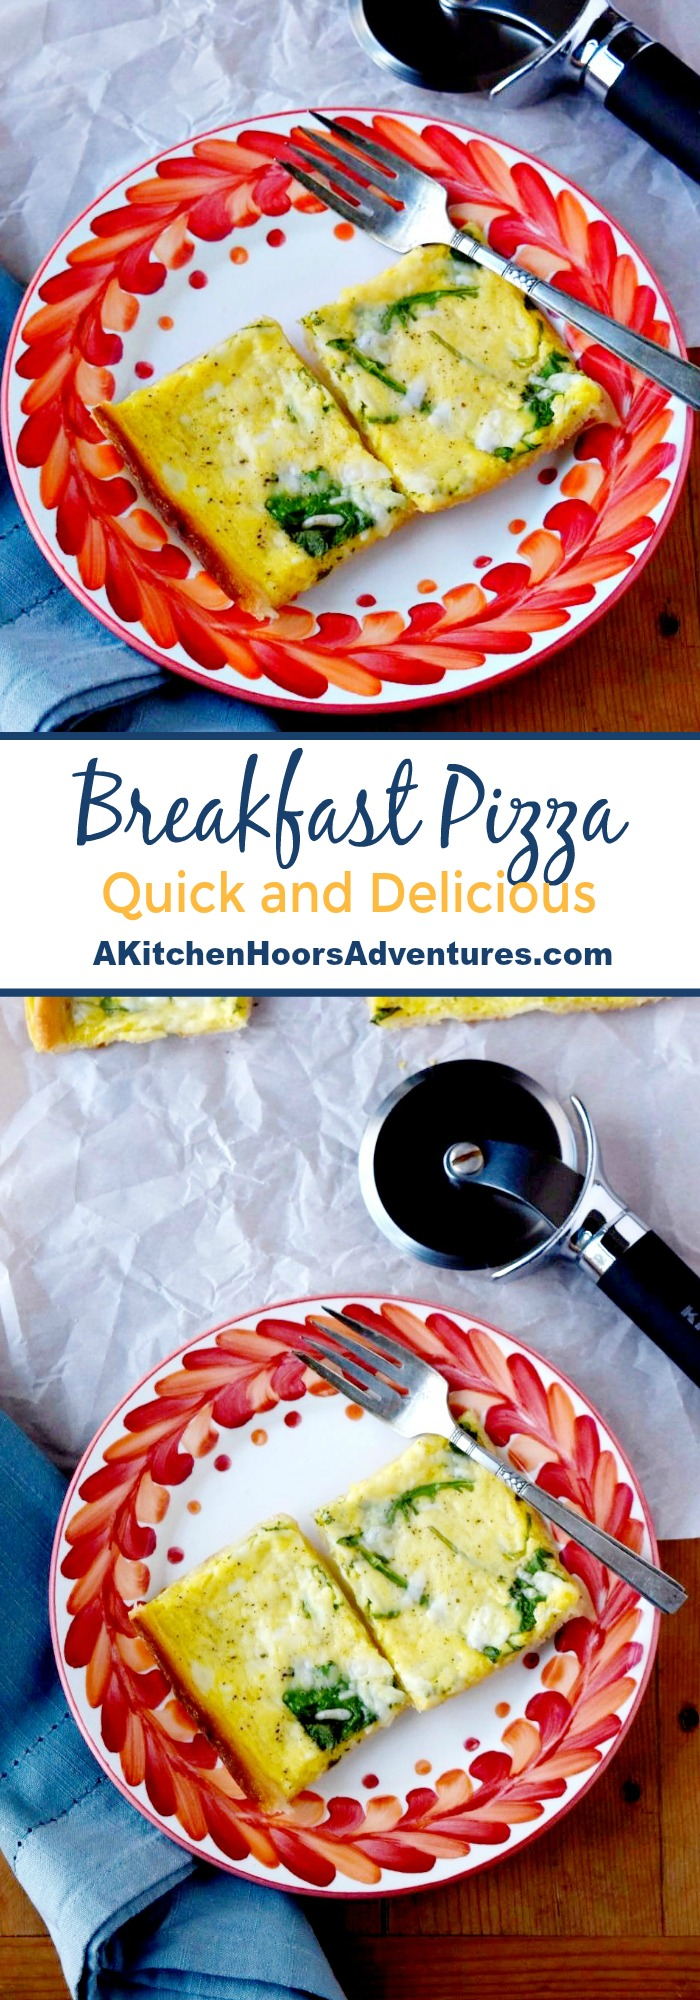 With just a few minutes of prep and a few simple ingredients you can have delicious breakfast on the table.Breakfast Pizza is a fun a easy recipe to whip up for your family. #SundaySupper